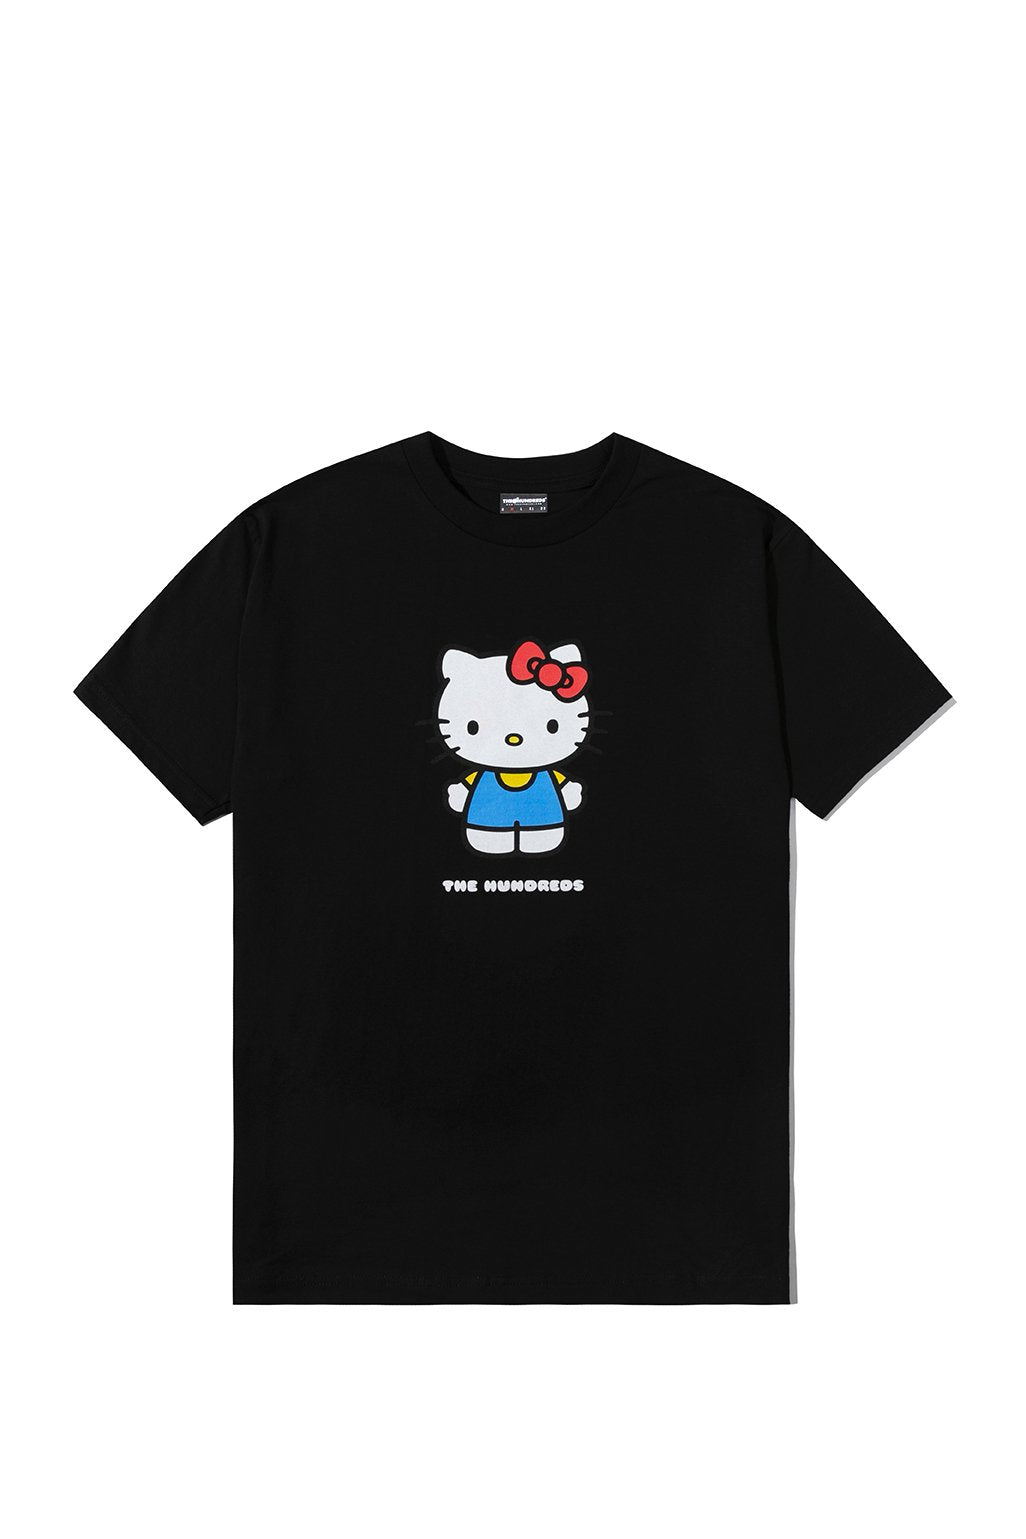 The Hundreds x Sanrio Kitty T-Shirt in Black xld